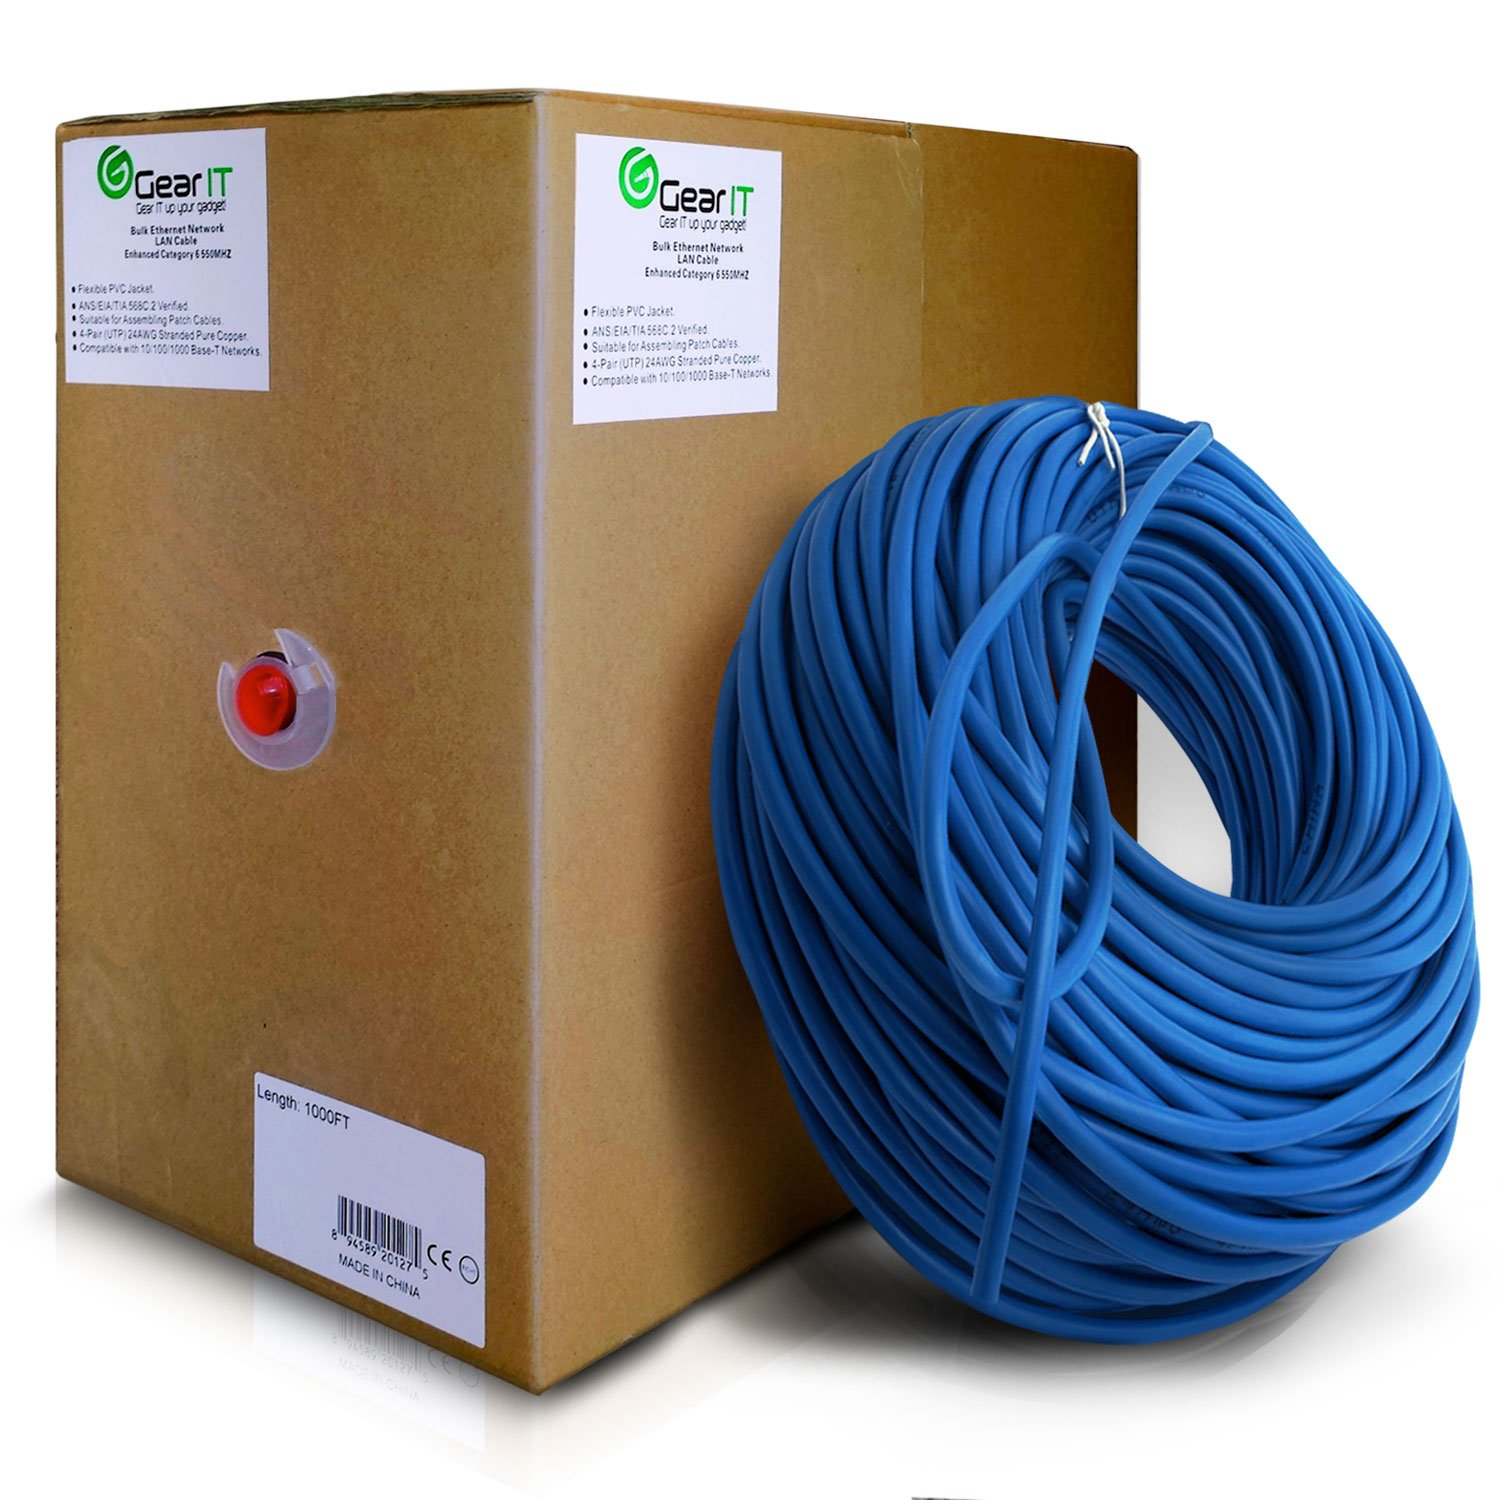 GearIT Cat5e Ethernet Cable Bulk 1000 Feet - Cat 5e 350Mhz 24AWG Full Copper Wire UTP Pull Box - In-Wall Rated (CM) Stranded Cat5e, Blue